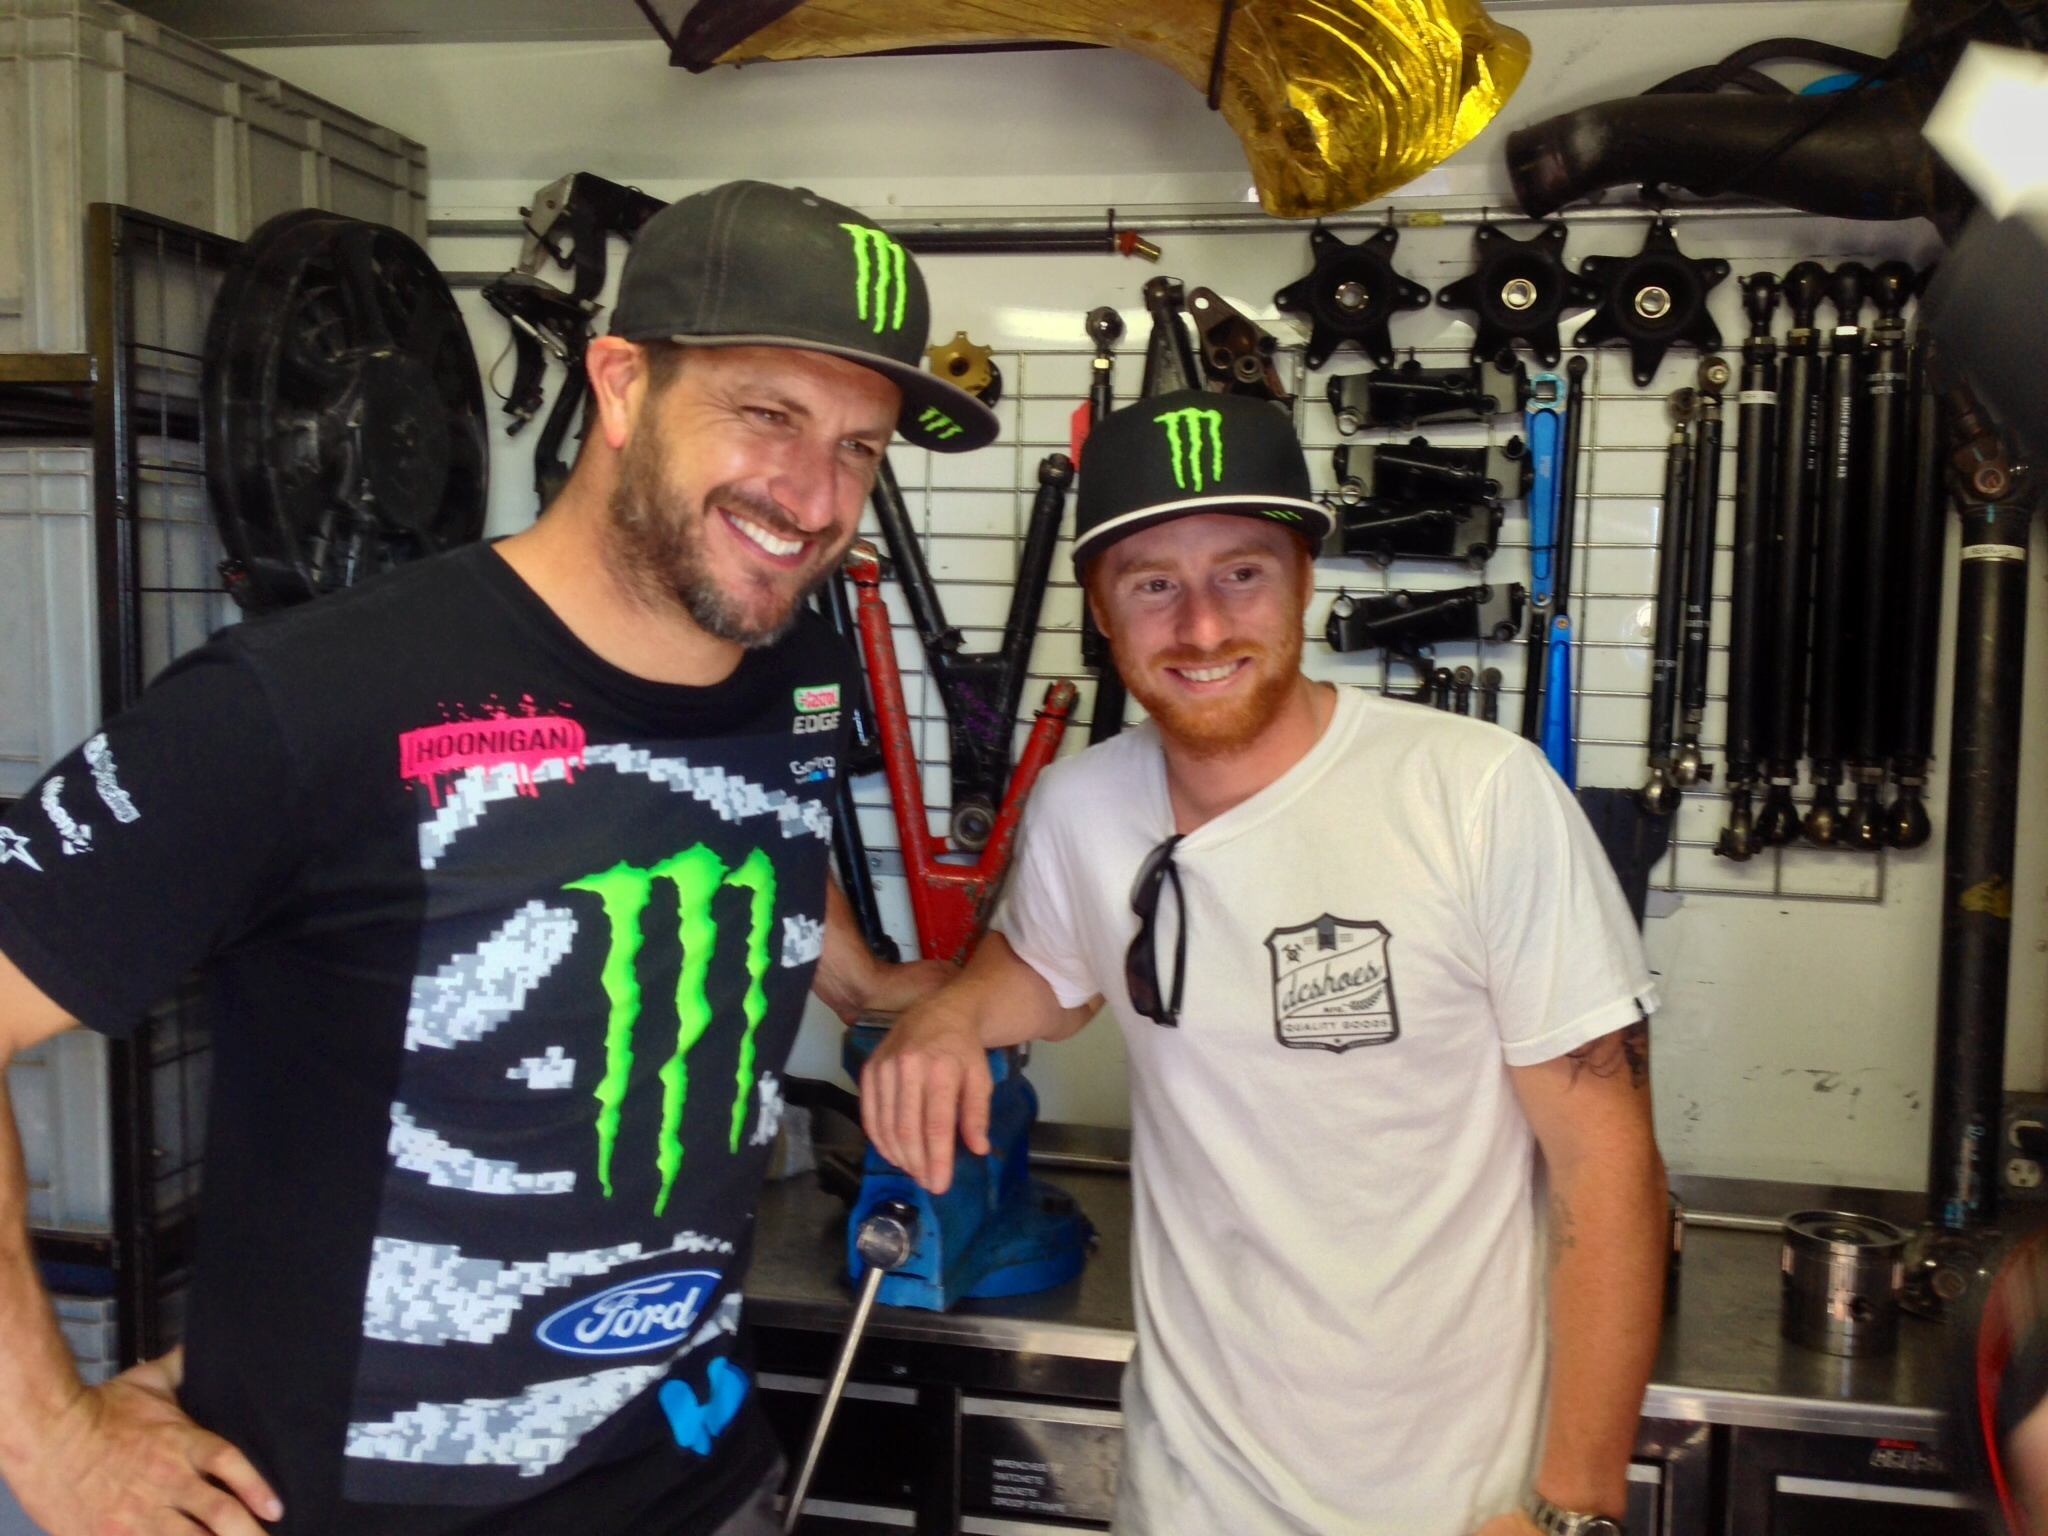 This summer I was thinking about making the switch to four wheels, J/K. This is me hanging out with Ken Block during Rallycross near Long Beach a few weeks ago.